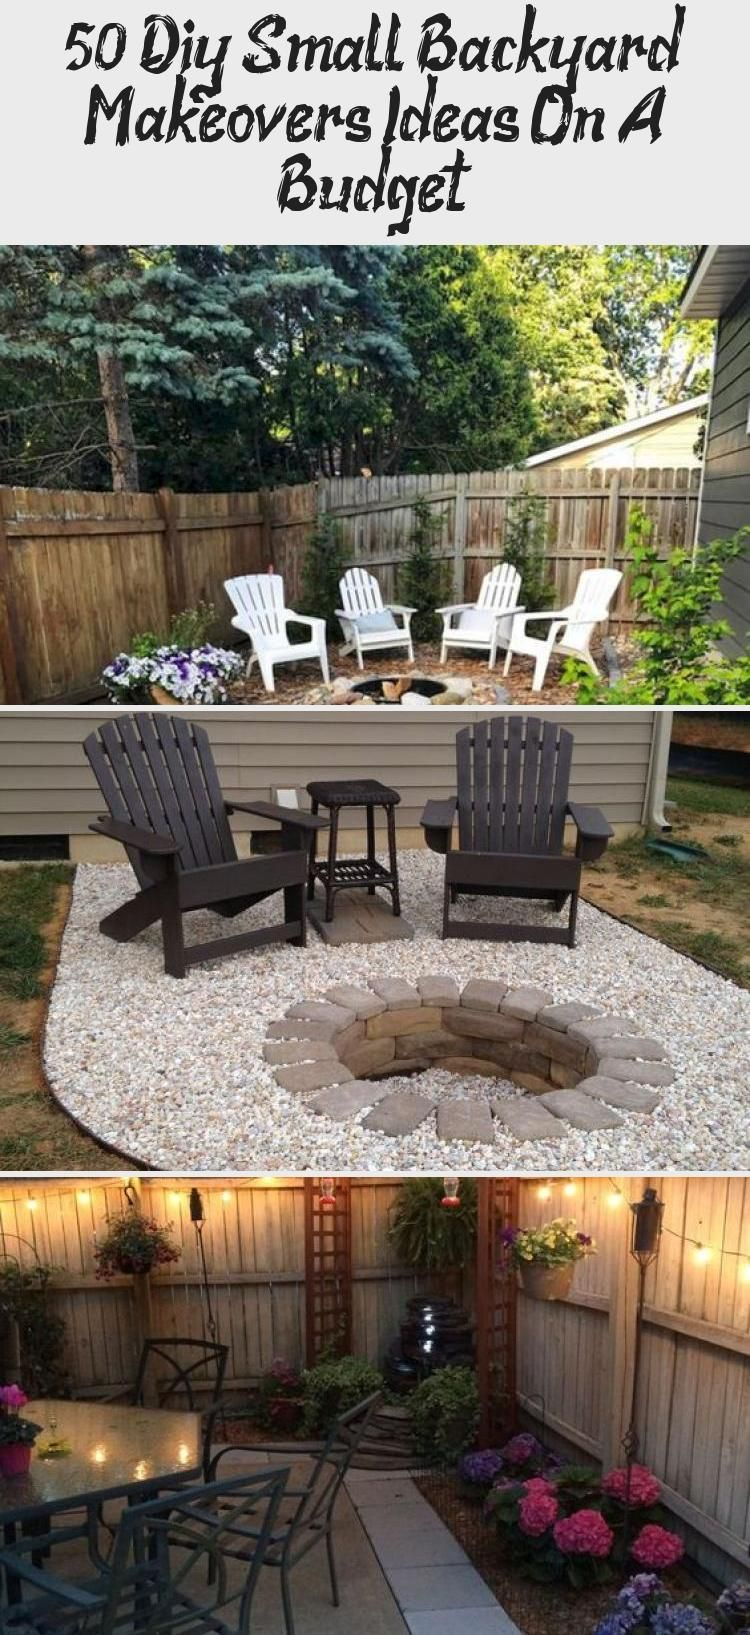 50 Diy Small Backyard Makeovers Ideas On A Budget 50 DIY ...